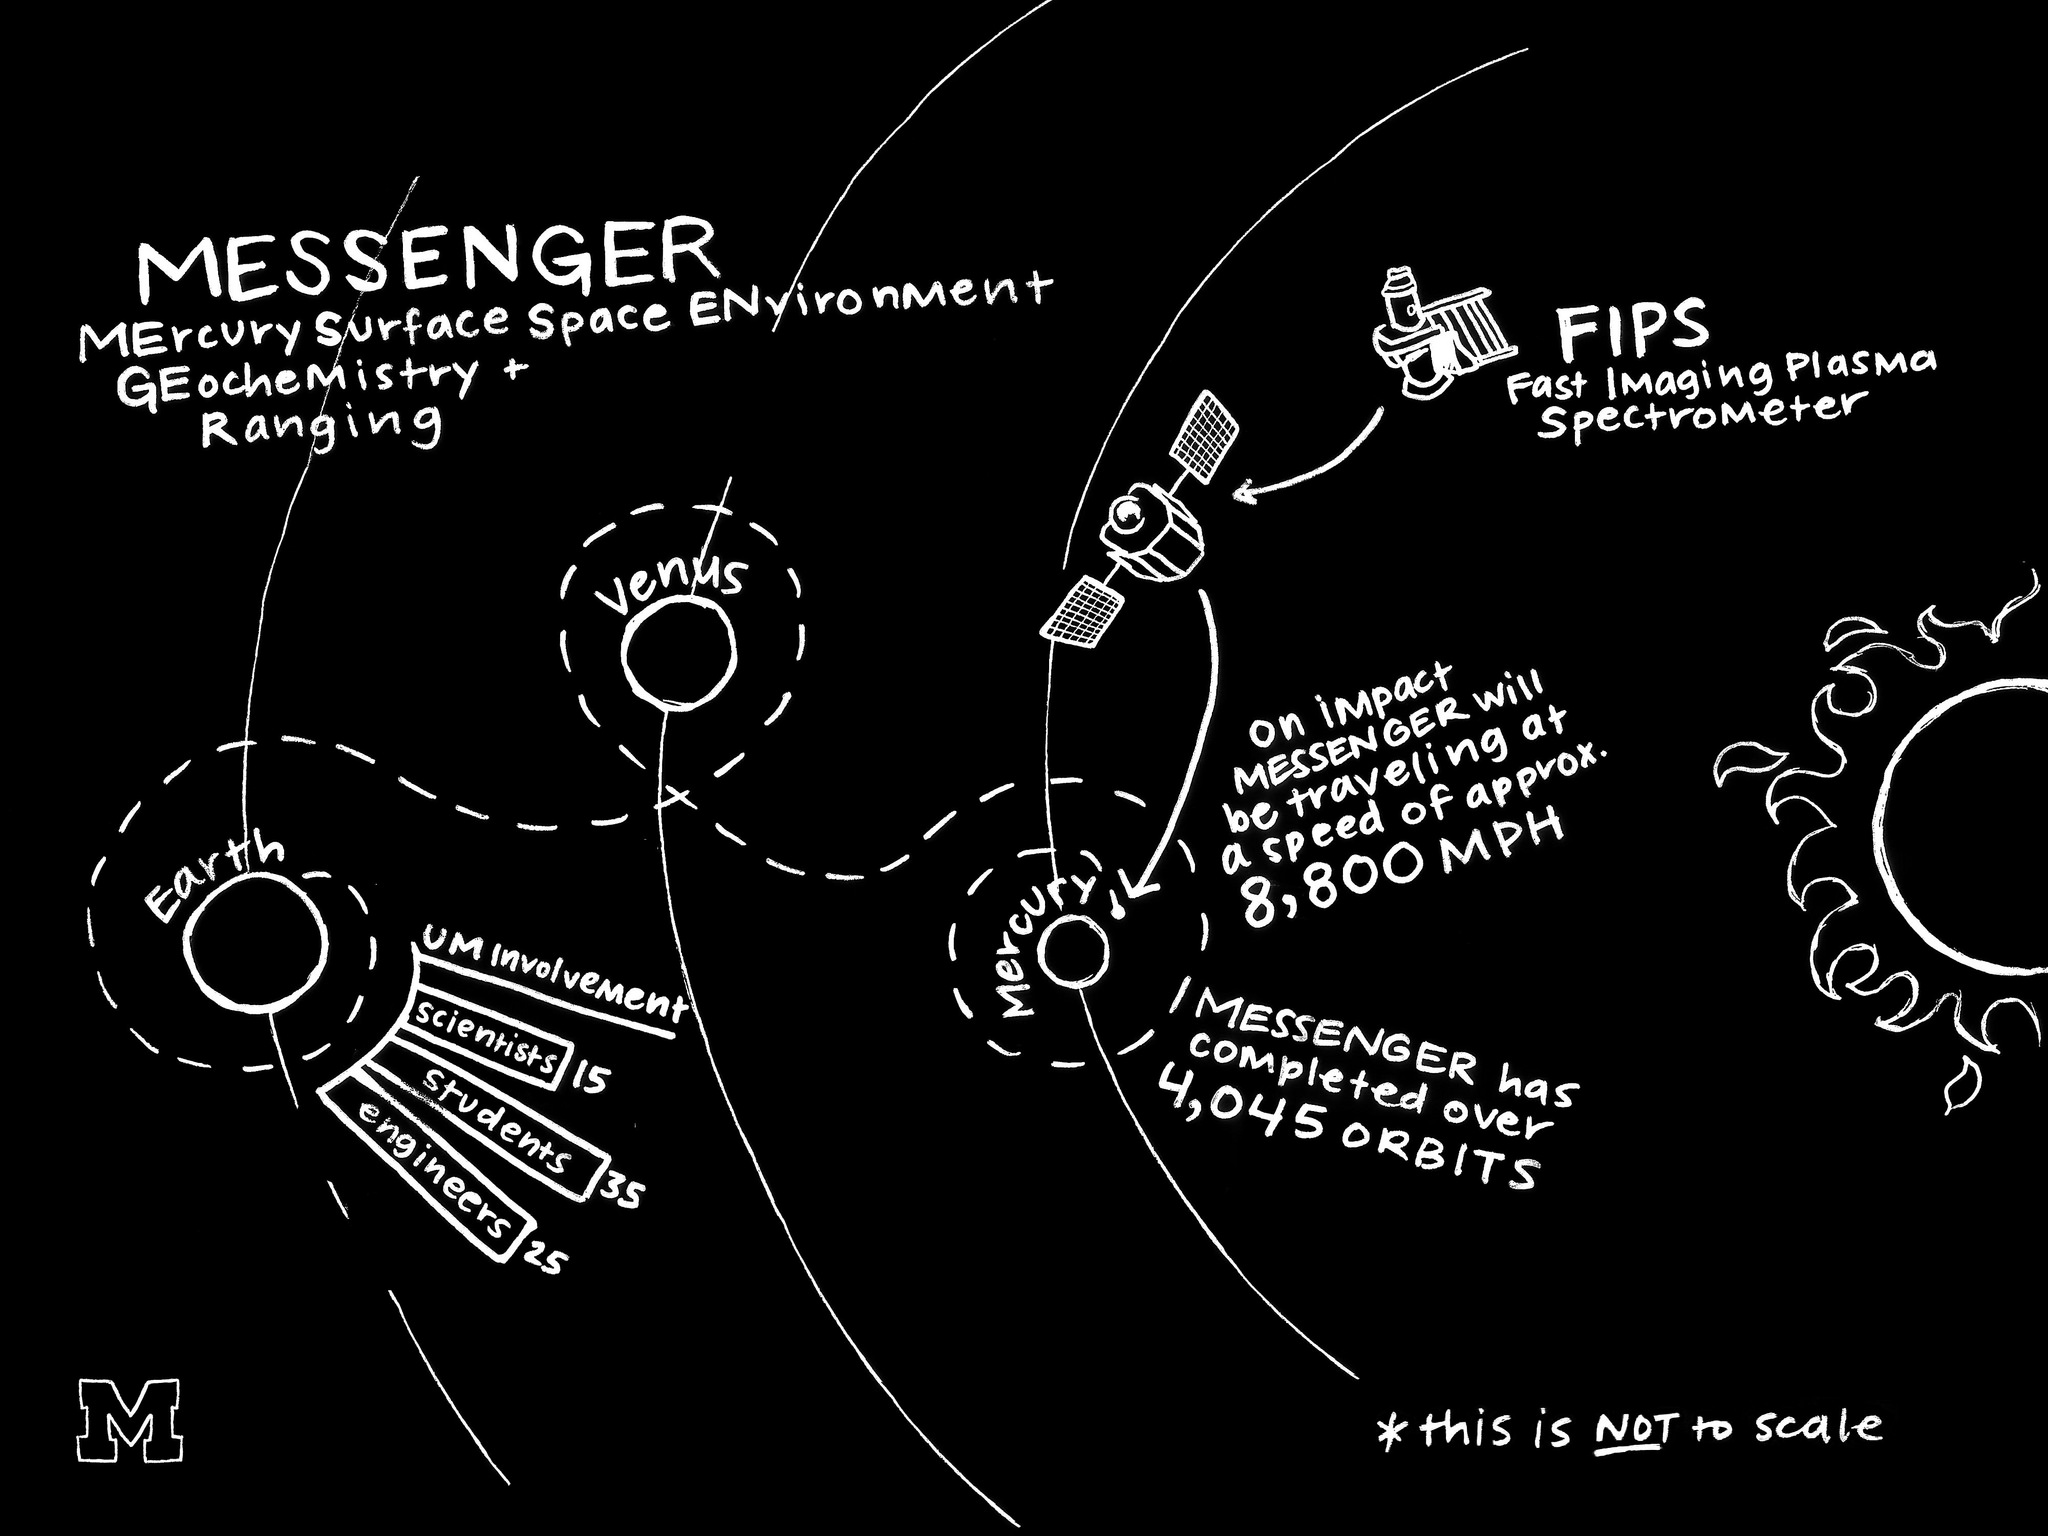 University of Michigan researchers were involved in the MESSENGER spacecraft mission to Mercury. They designed and built an instrument and helped analyze its data. The craft, which left Earth in 2004, flew by Venus on its way to the closet planet to the sun. Illustrations by Jessica Knedgen, Michigan Engineering Communications & Marketing